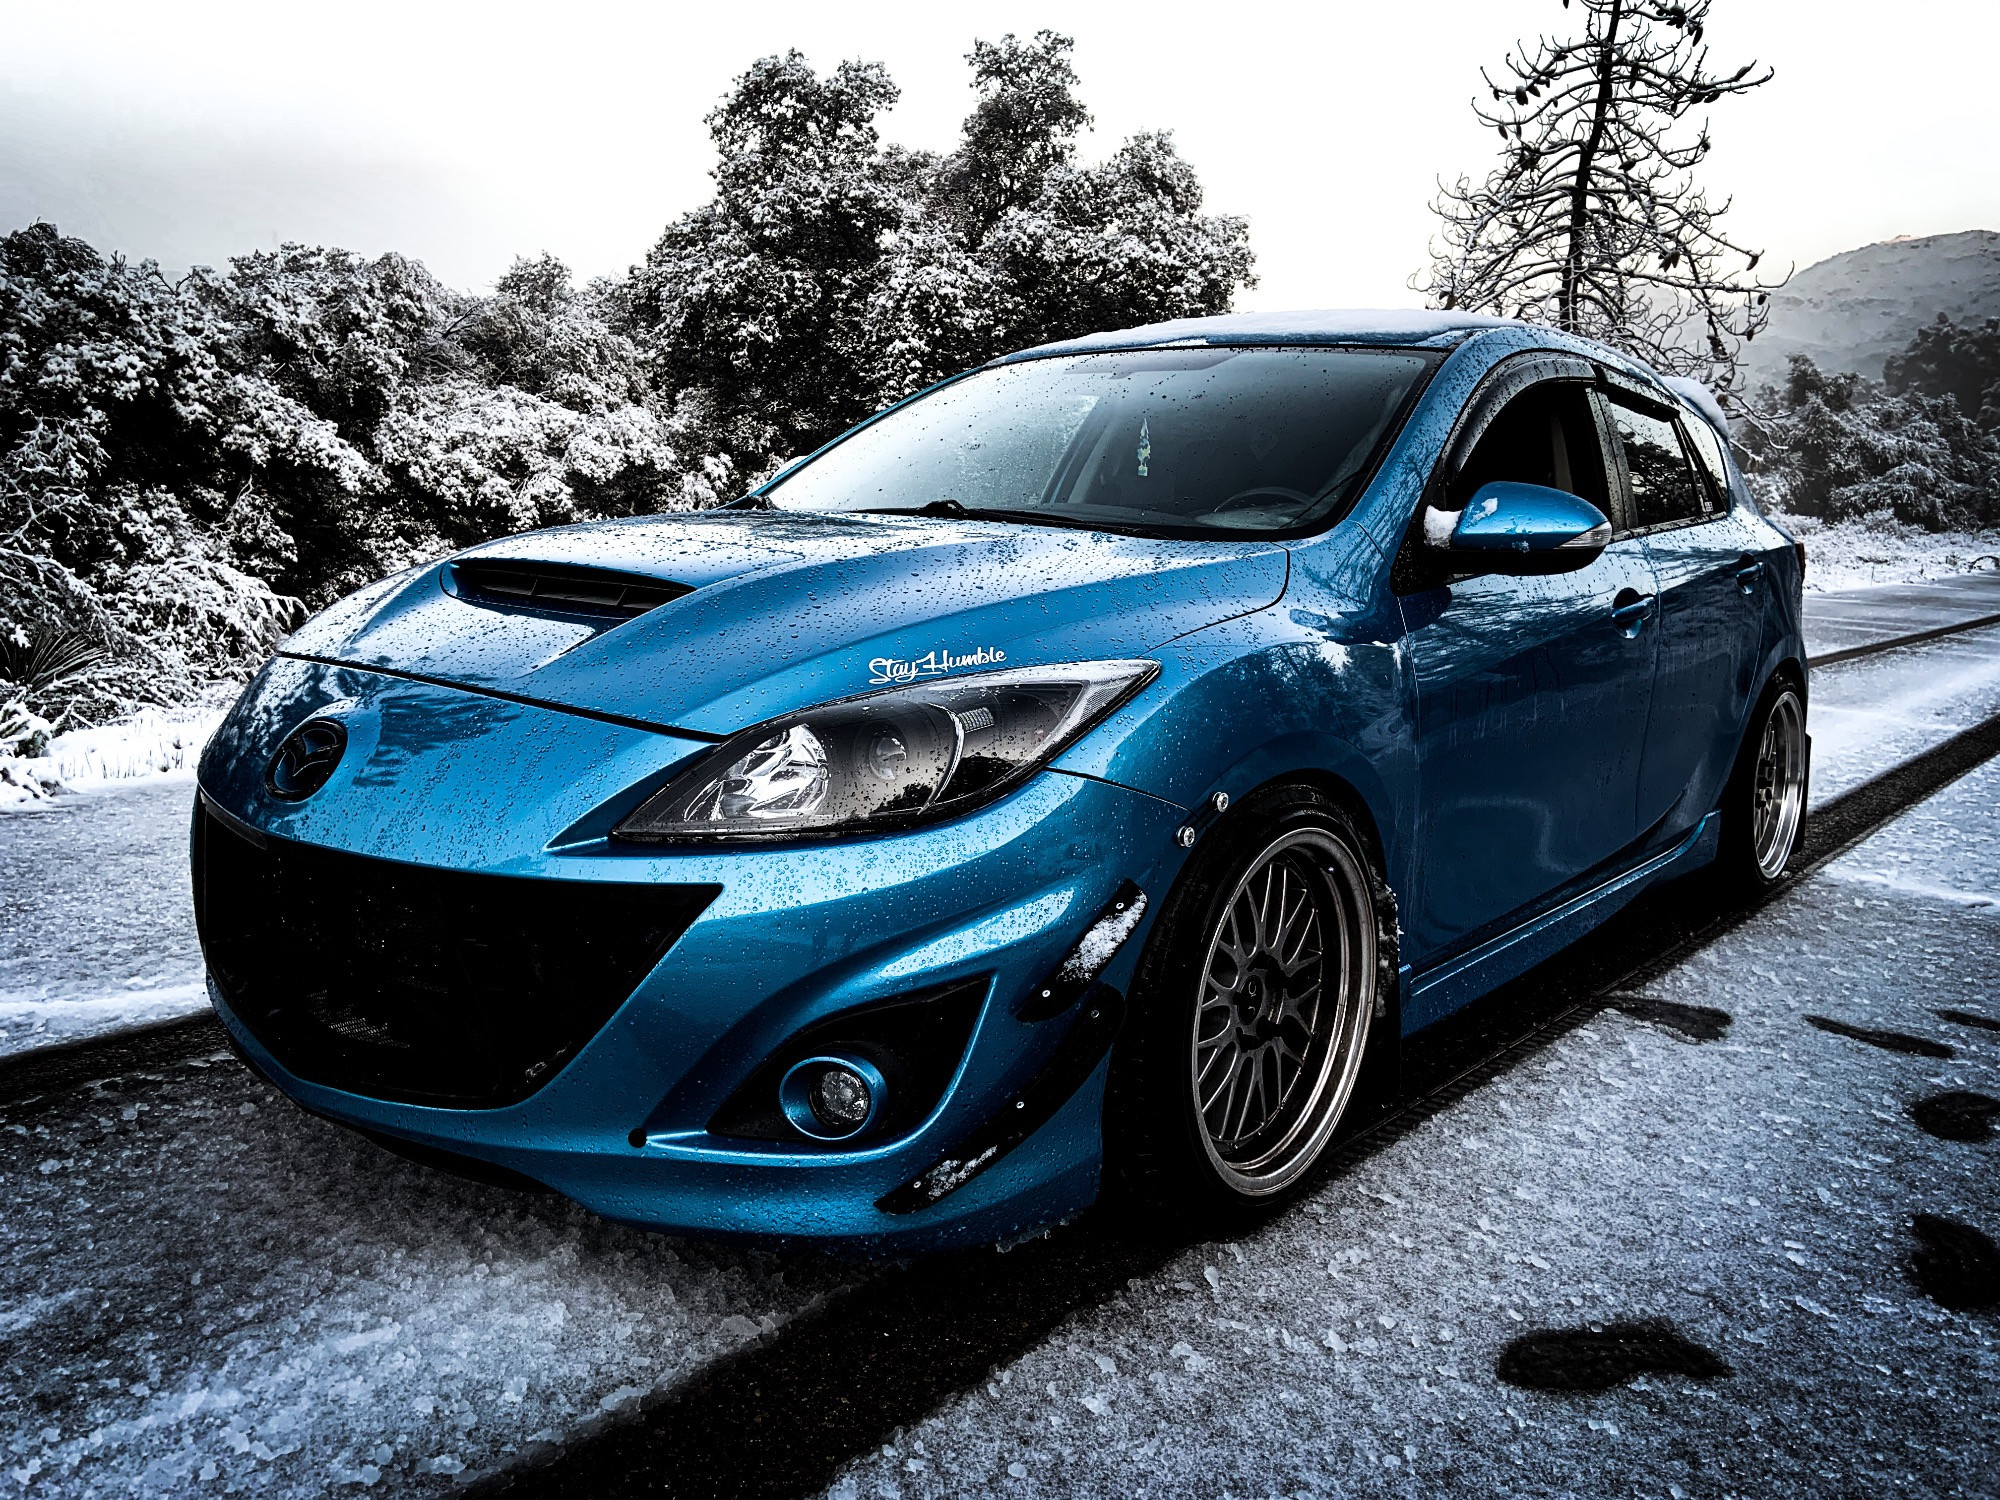 Mazdaspeed3 in the snow